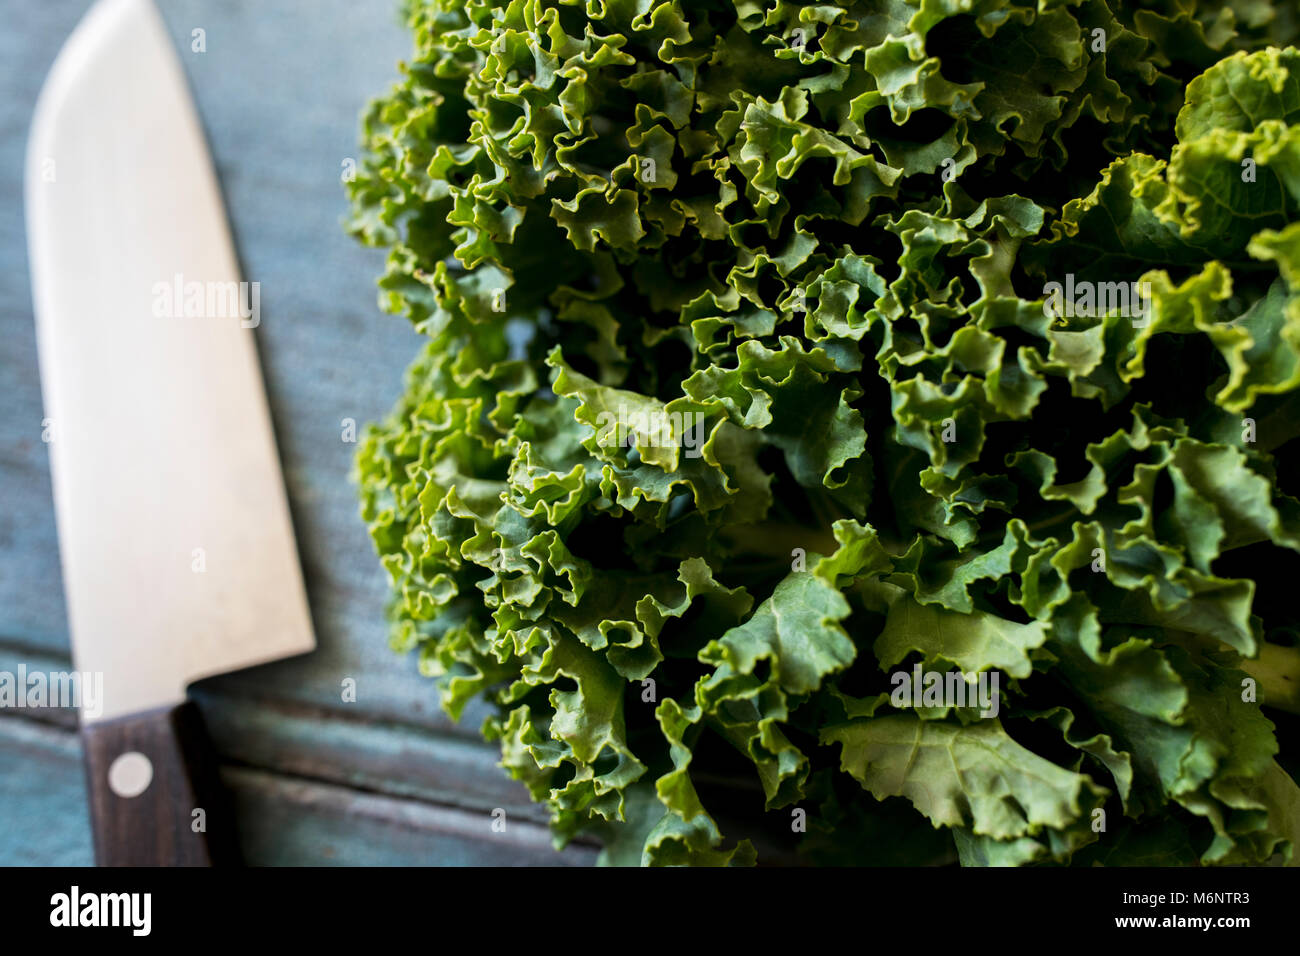 Close Up Of Fresh Kale On Table With Knife - Stock Image